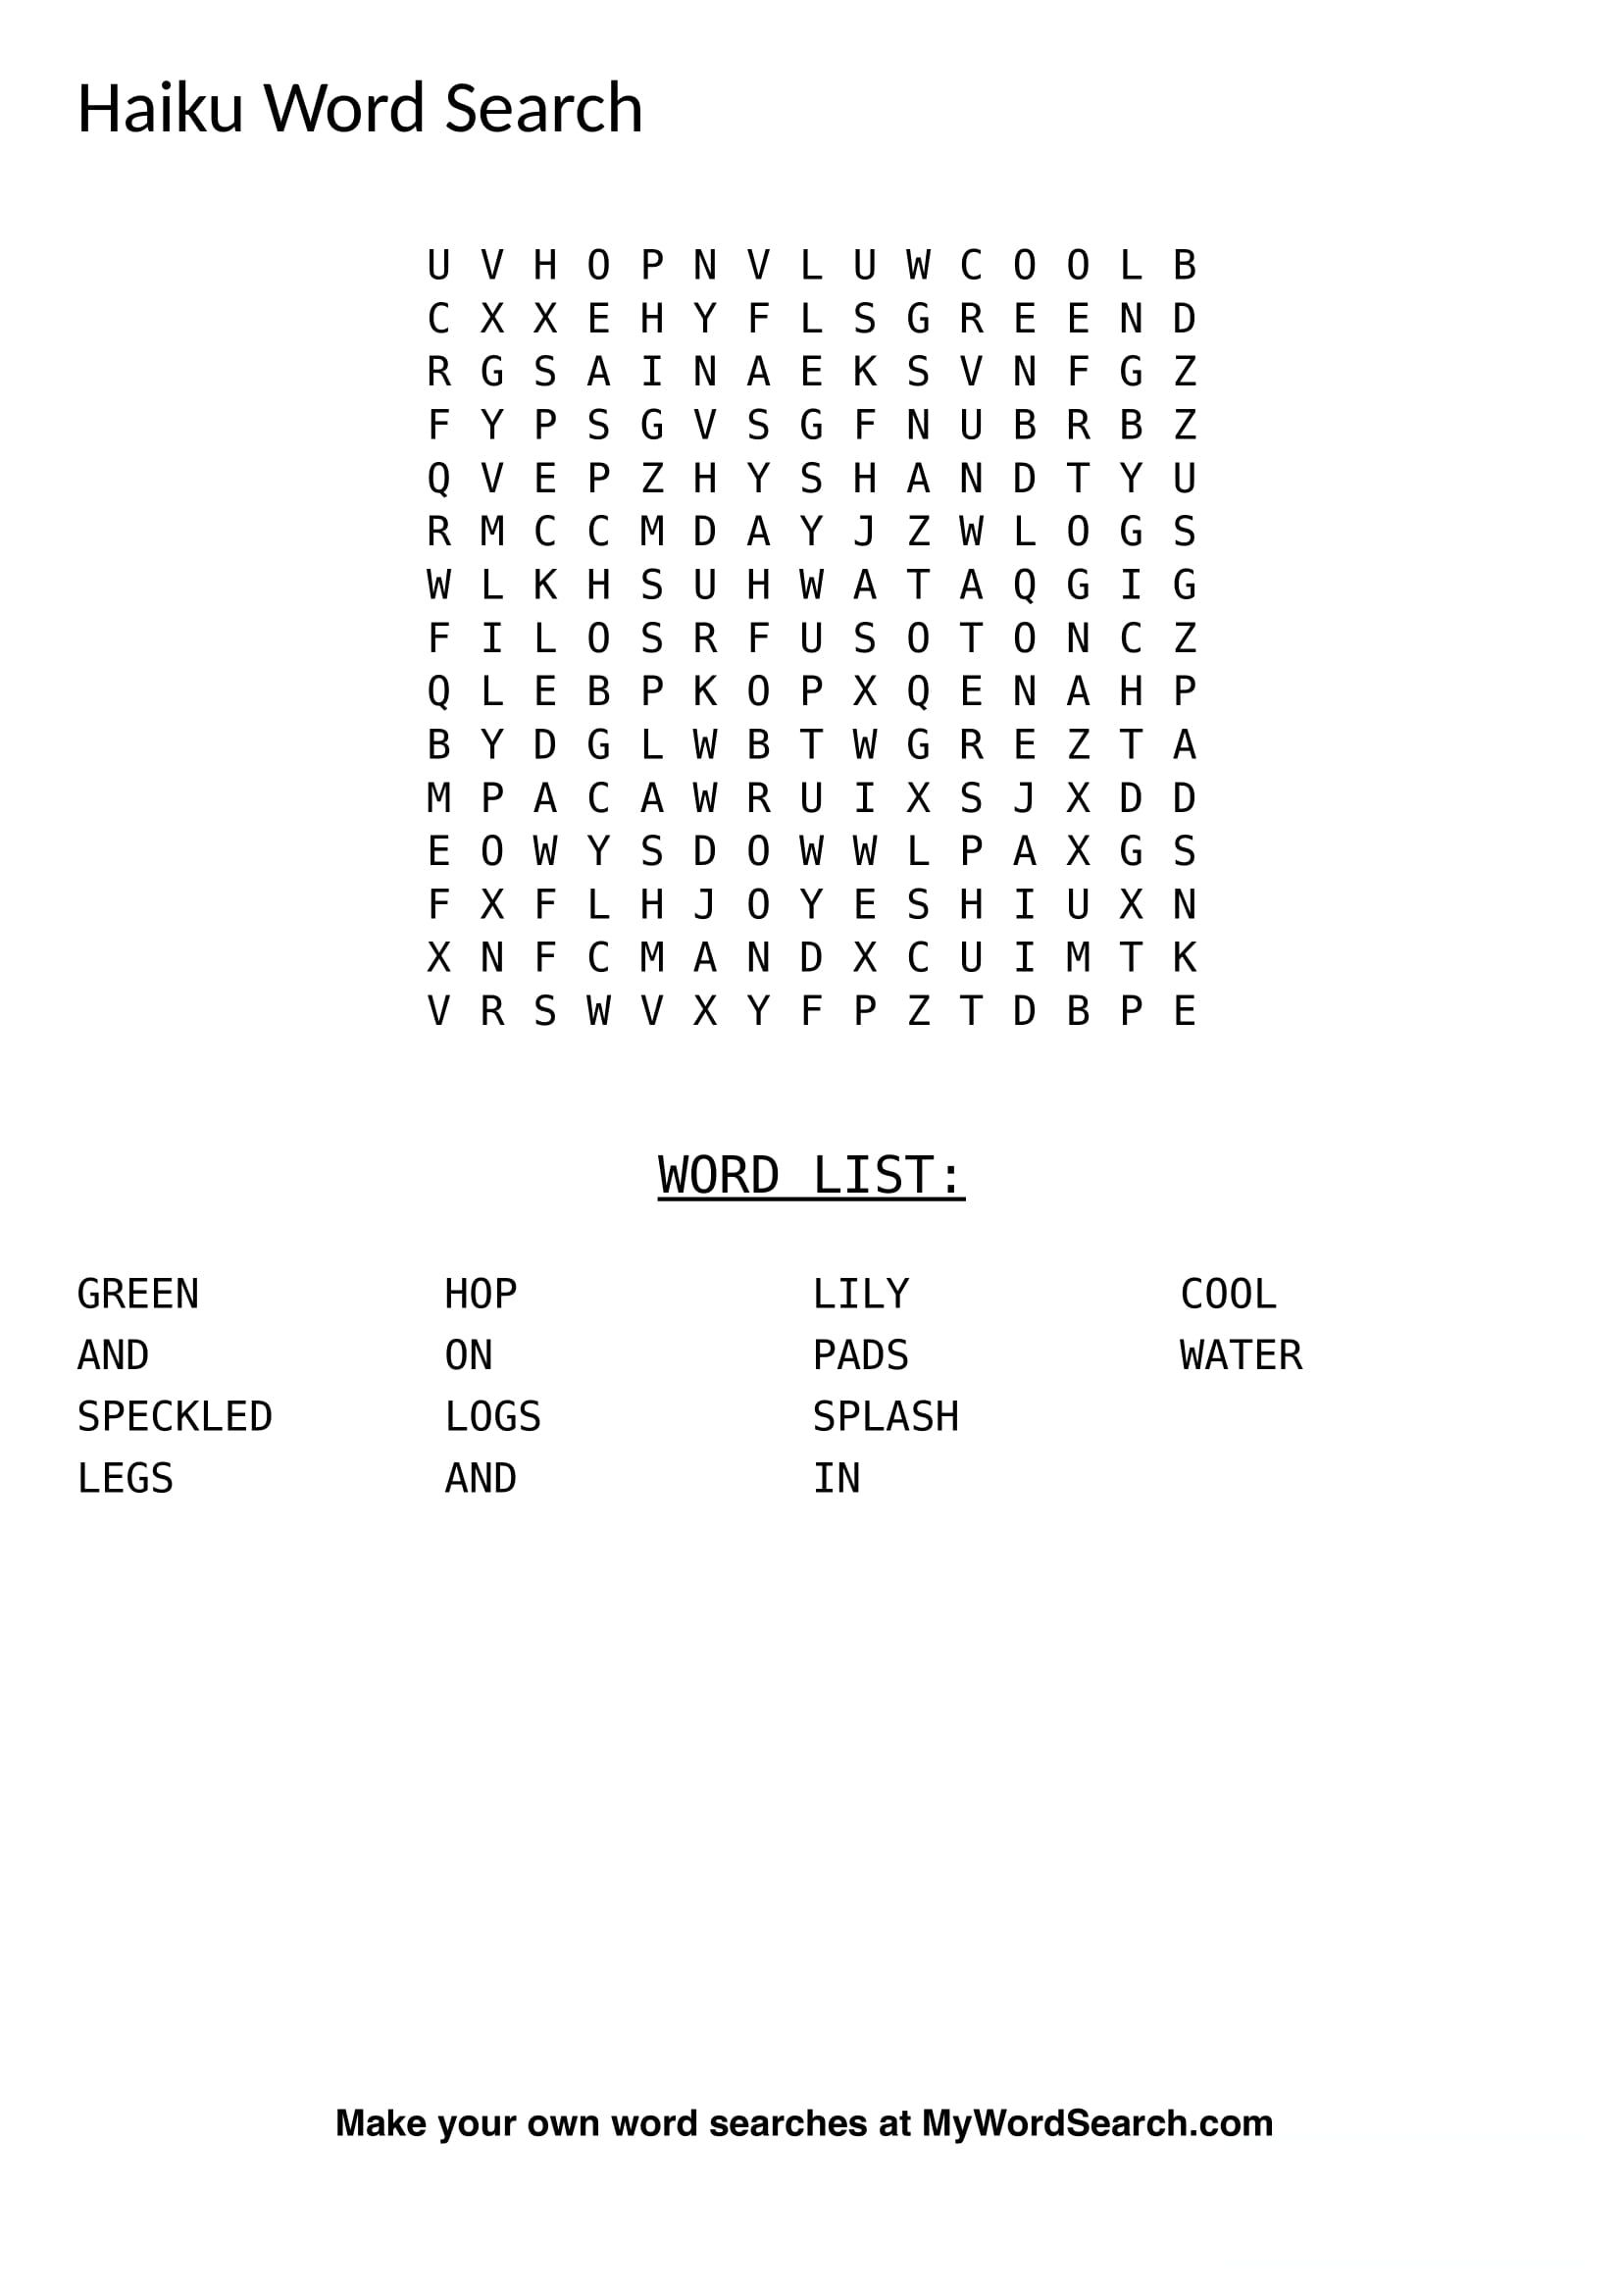 Make your own haiku word searches or poetry word searches at ...